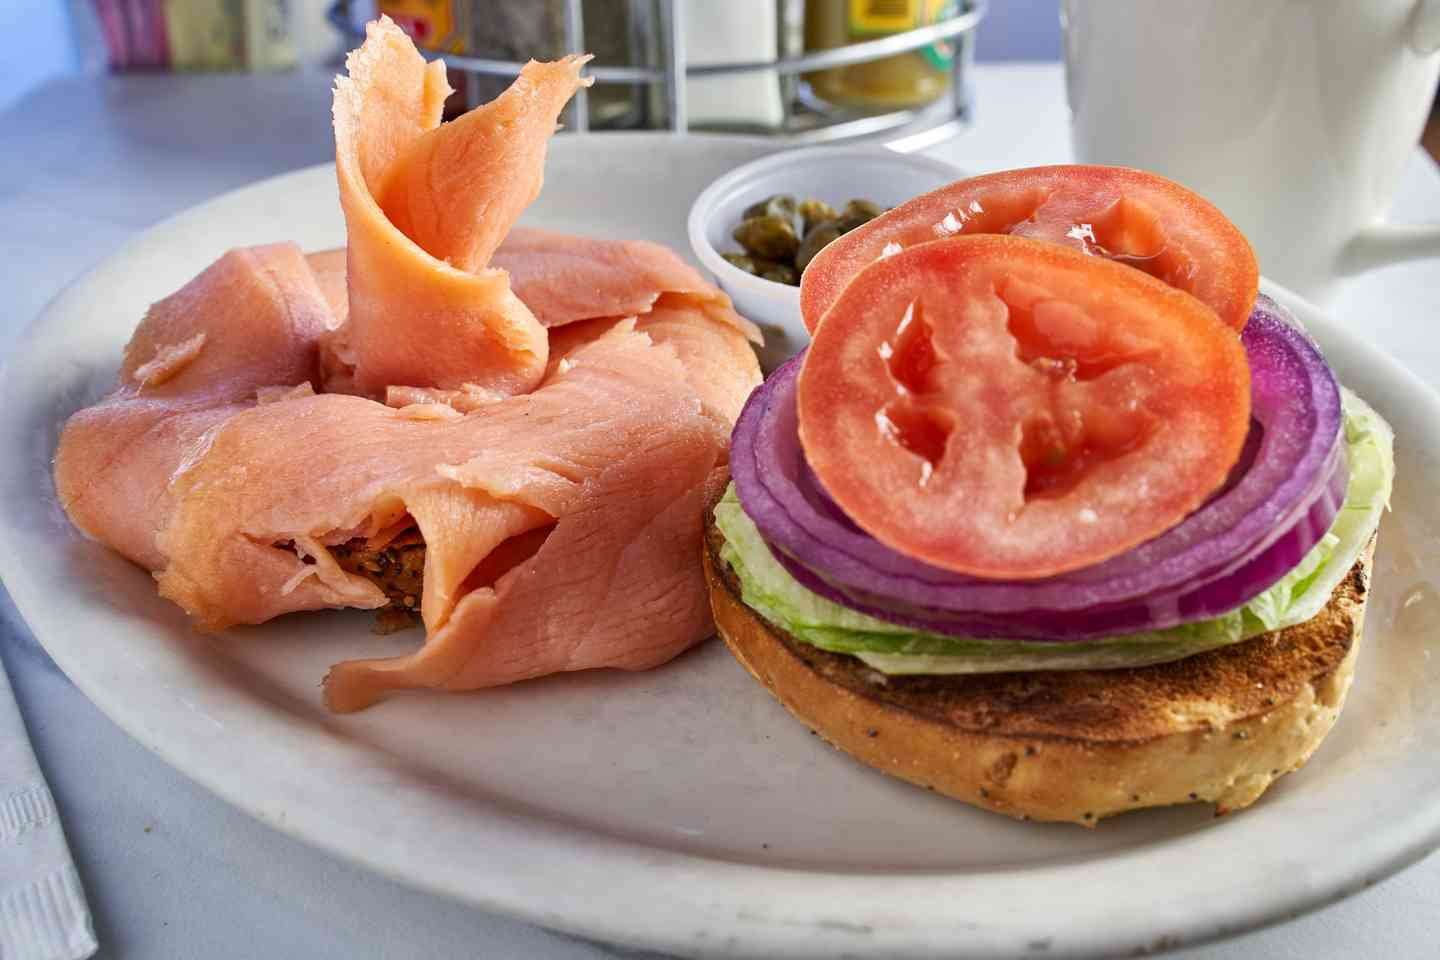 Nova Scotia Lox Bagel Sandwich